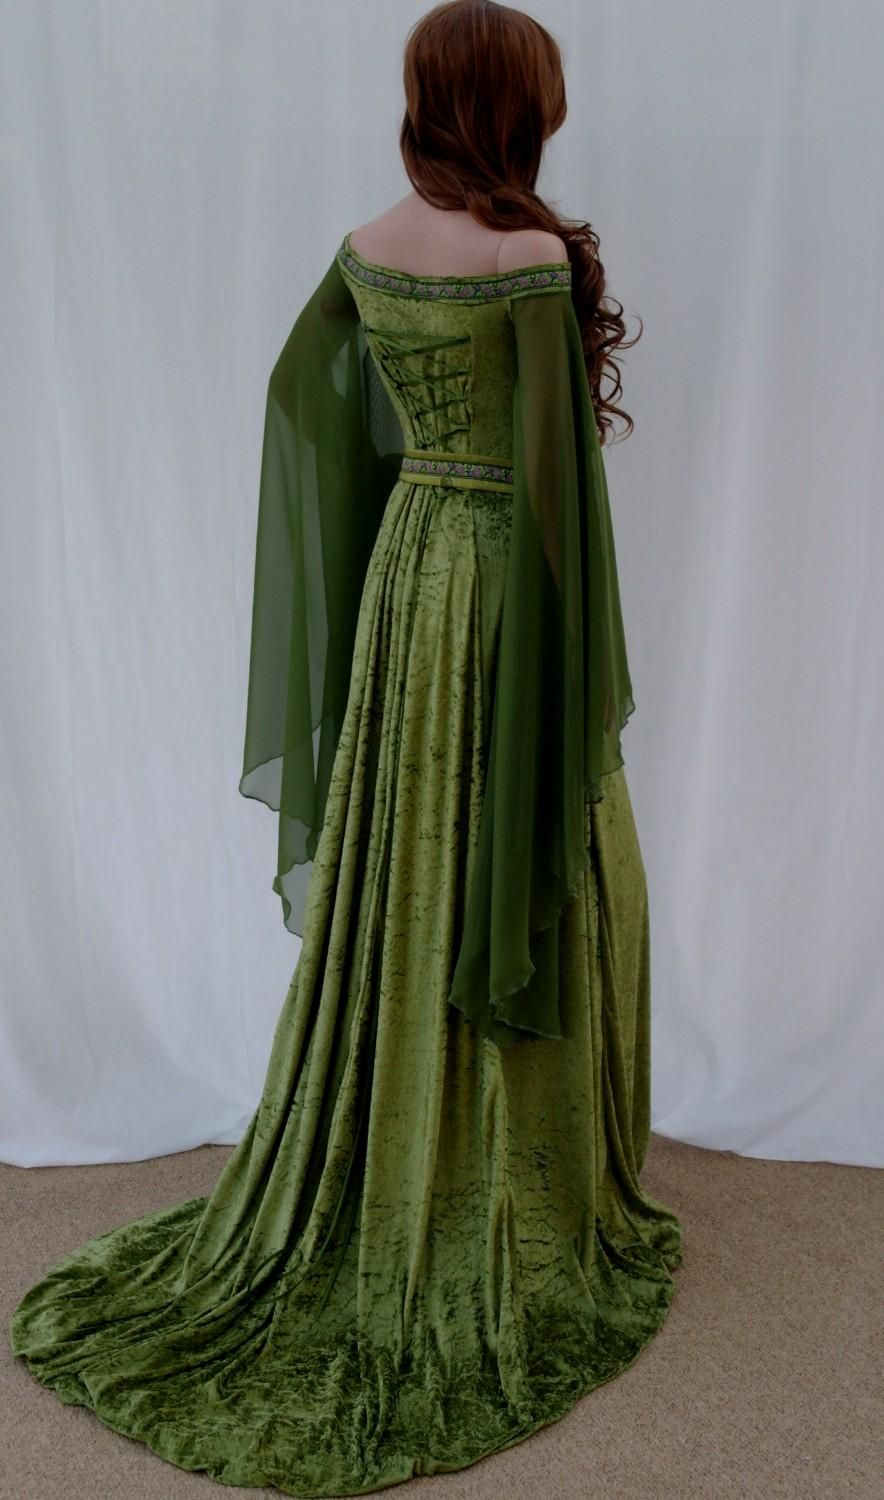 Popular items for celtic wedding dress on etsy ireland for Celtic pagan wedding dresses